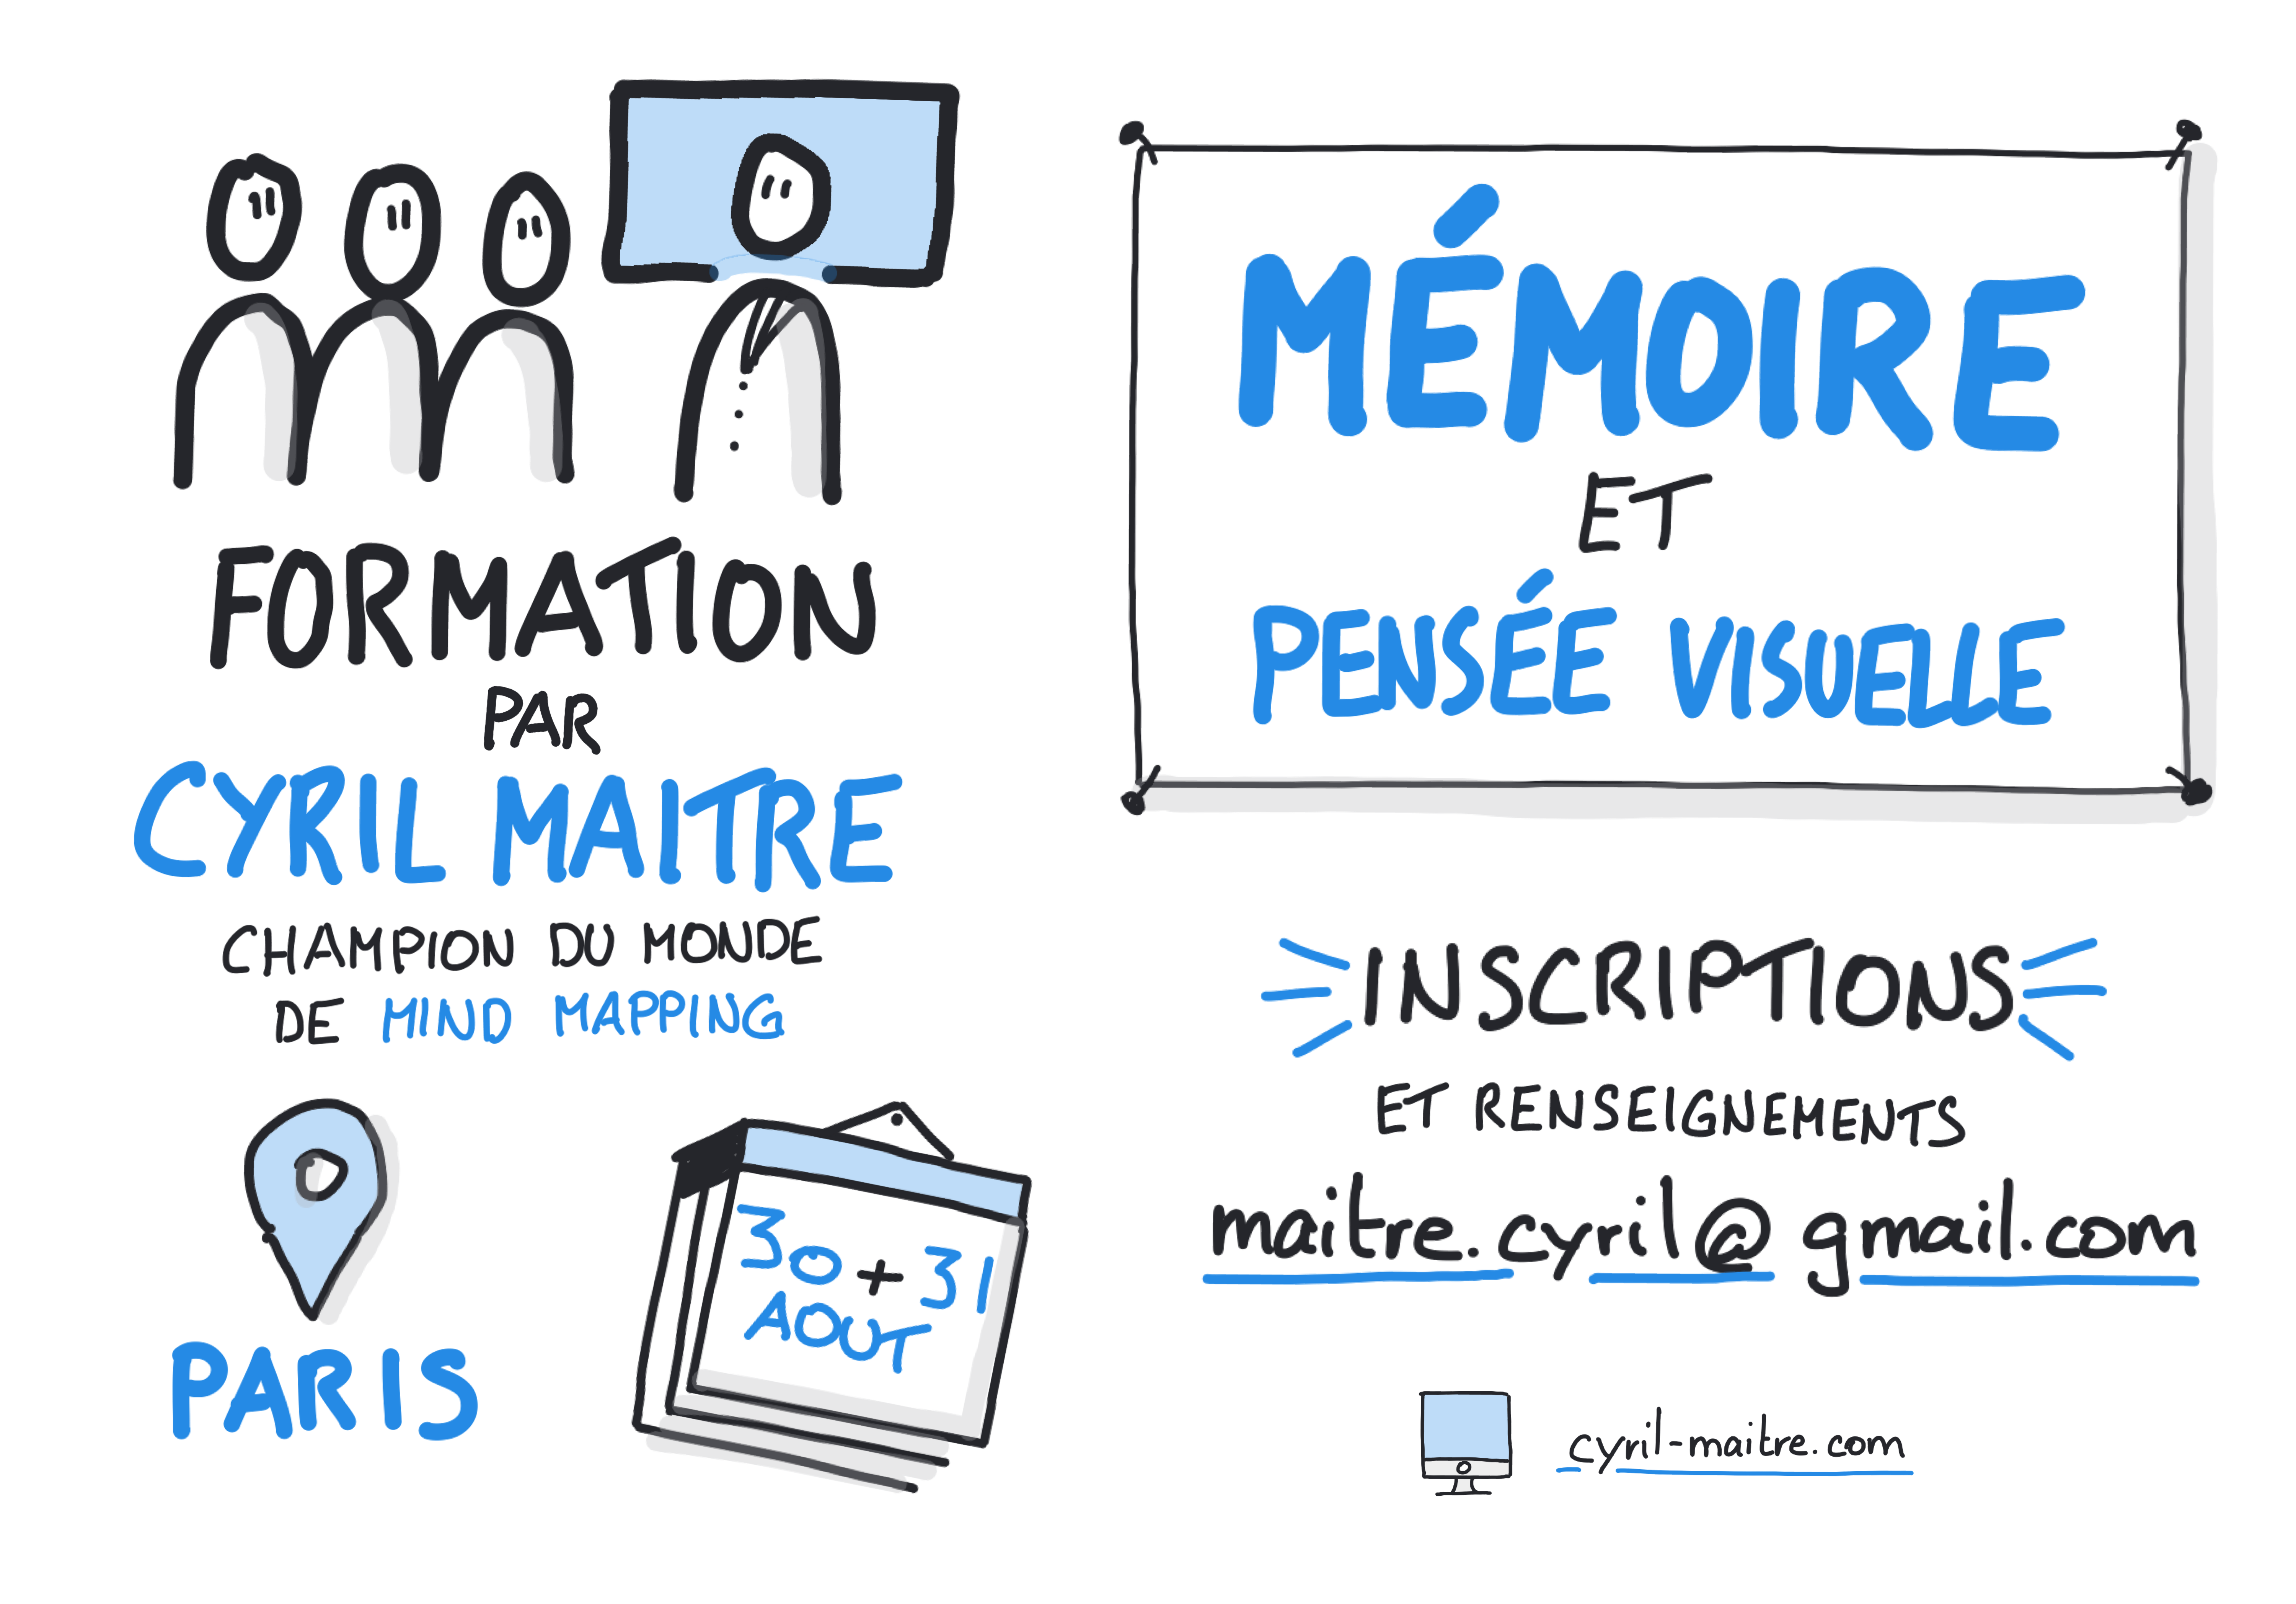 Visuel memoire et pensee visuelle cyril maitre Paris 2020 08